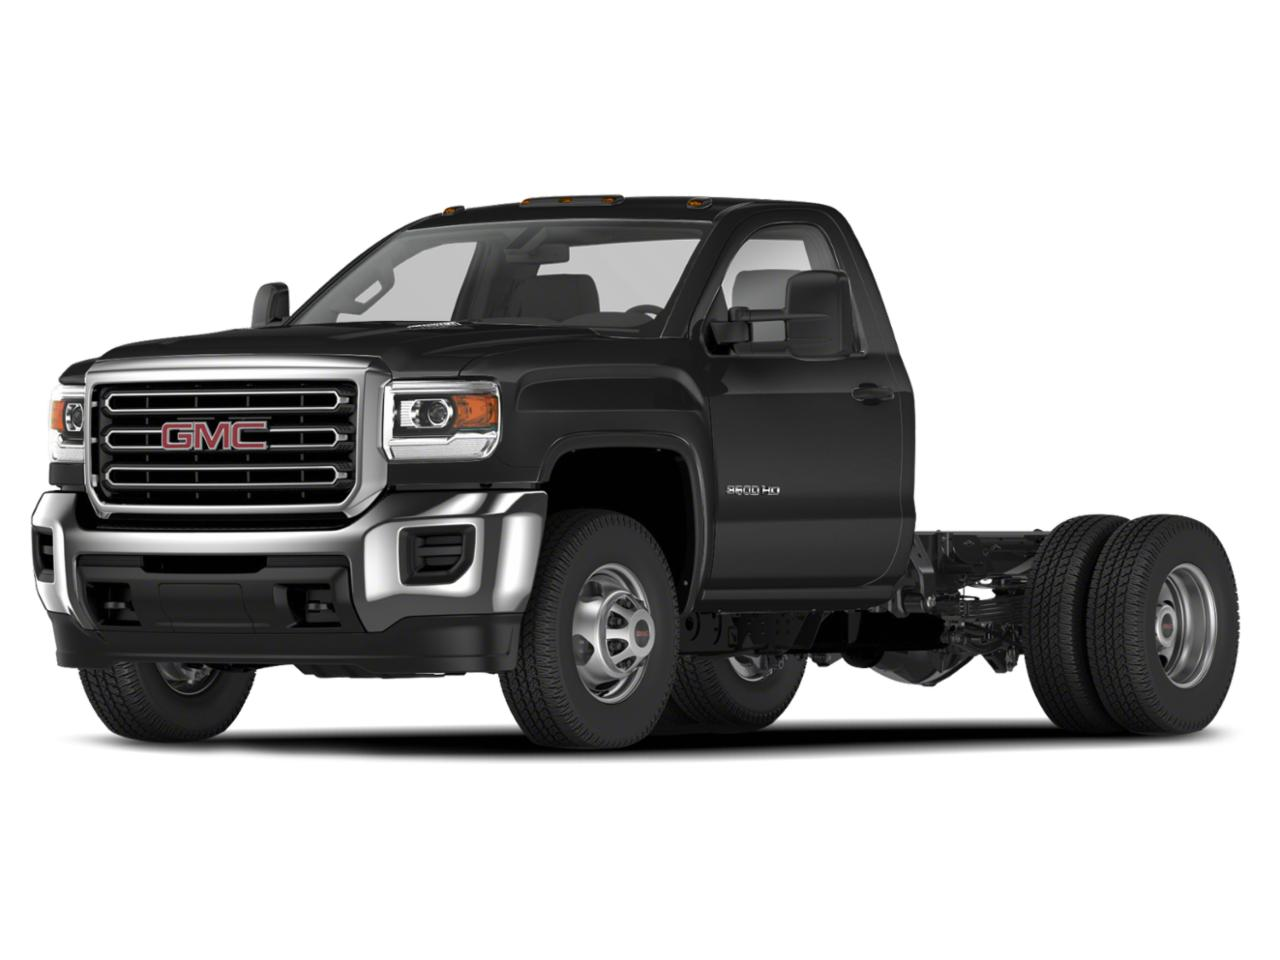 2020 GMC Sierra 3500HD CC Vehicle Photo in Quakertown, PA 18951